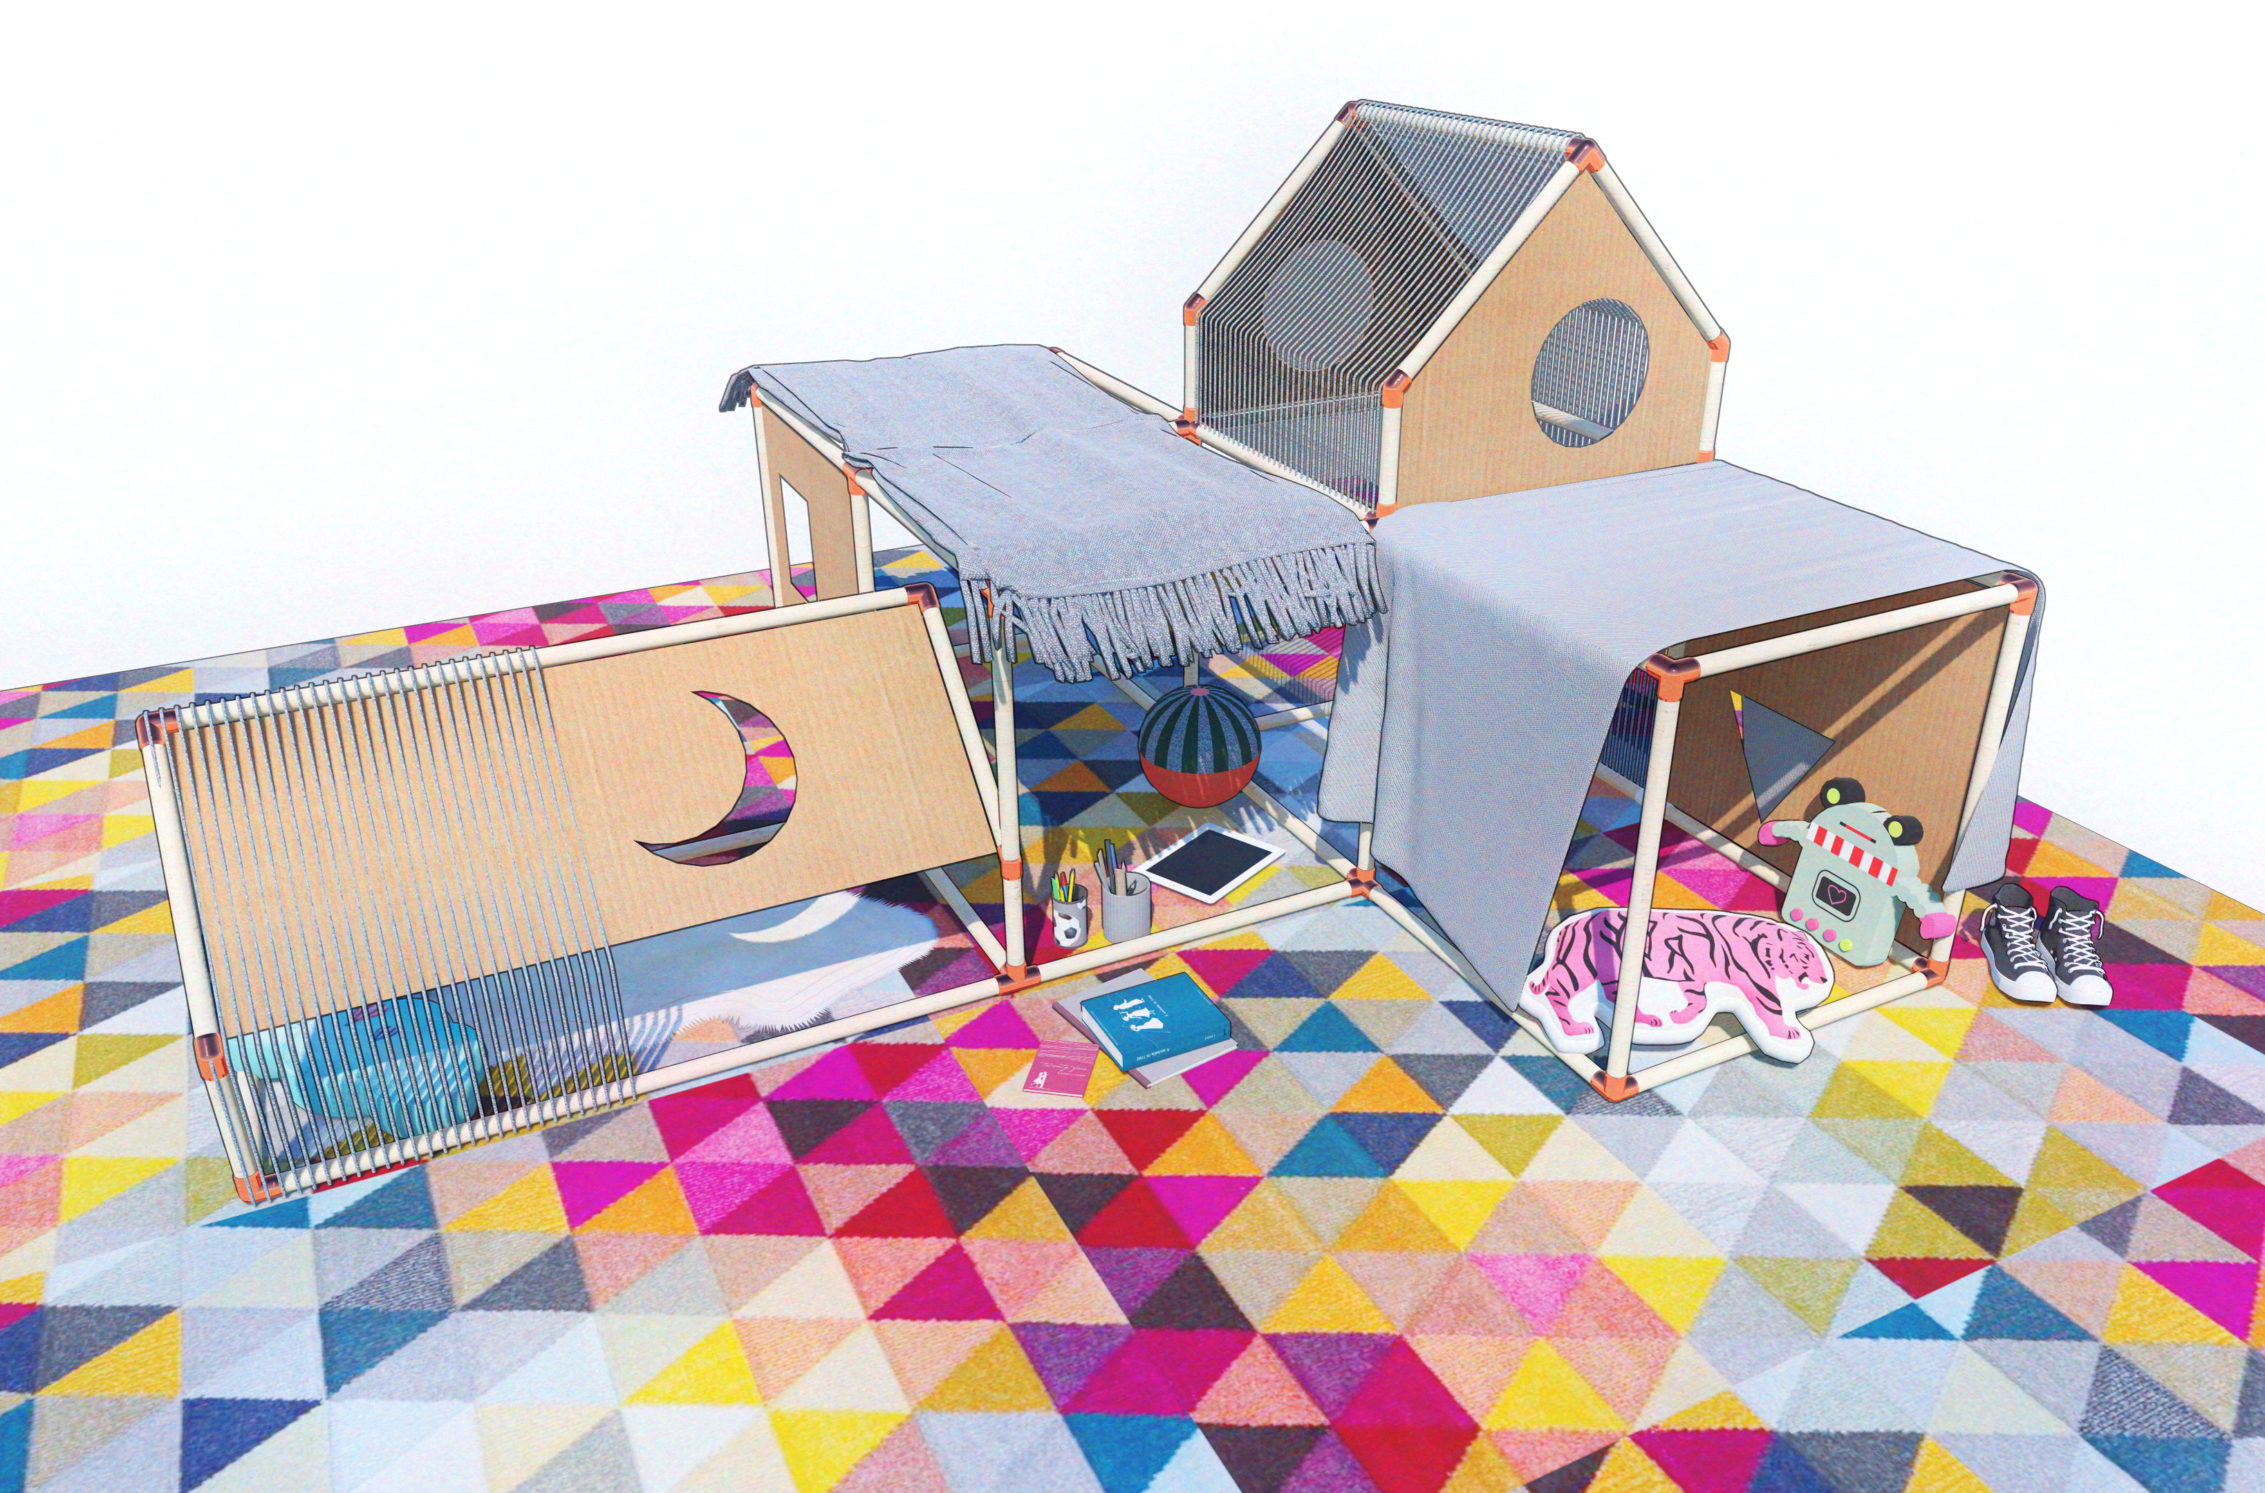 A DIY Kids Fort with Sound Barrier